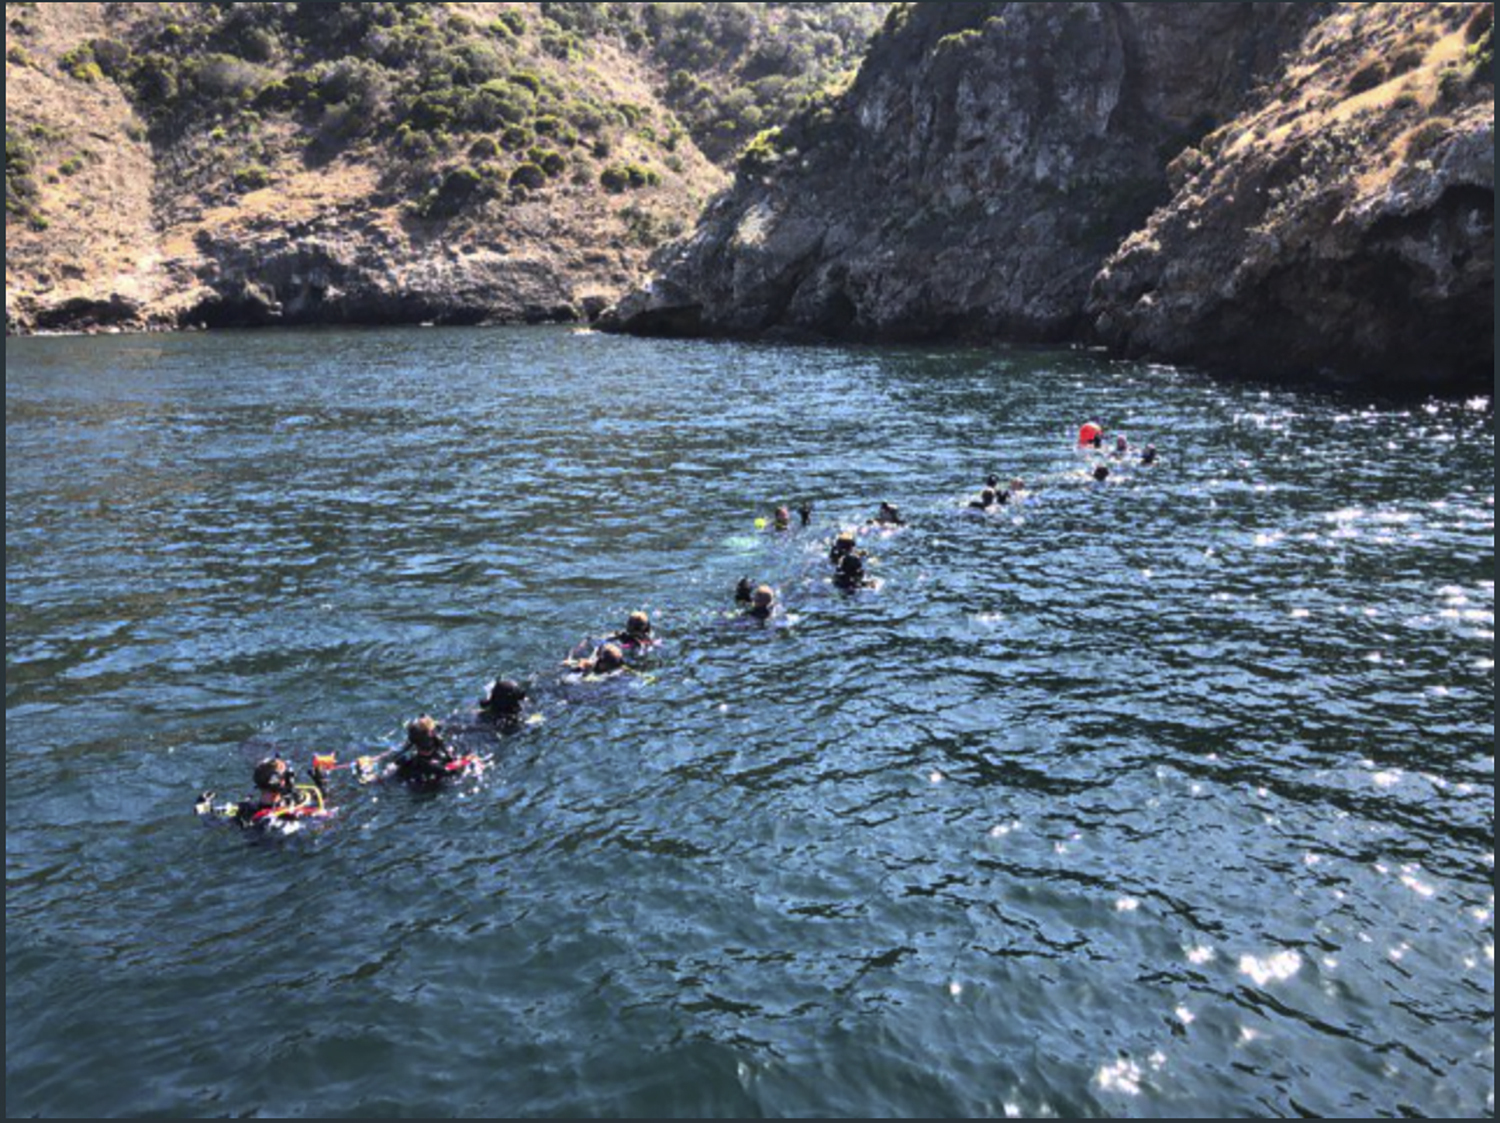 Fire foiled rescued attempts by California boat crew